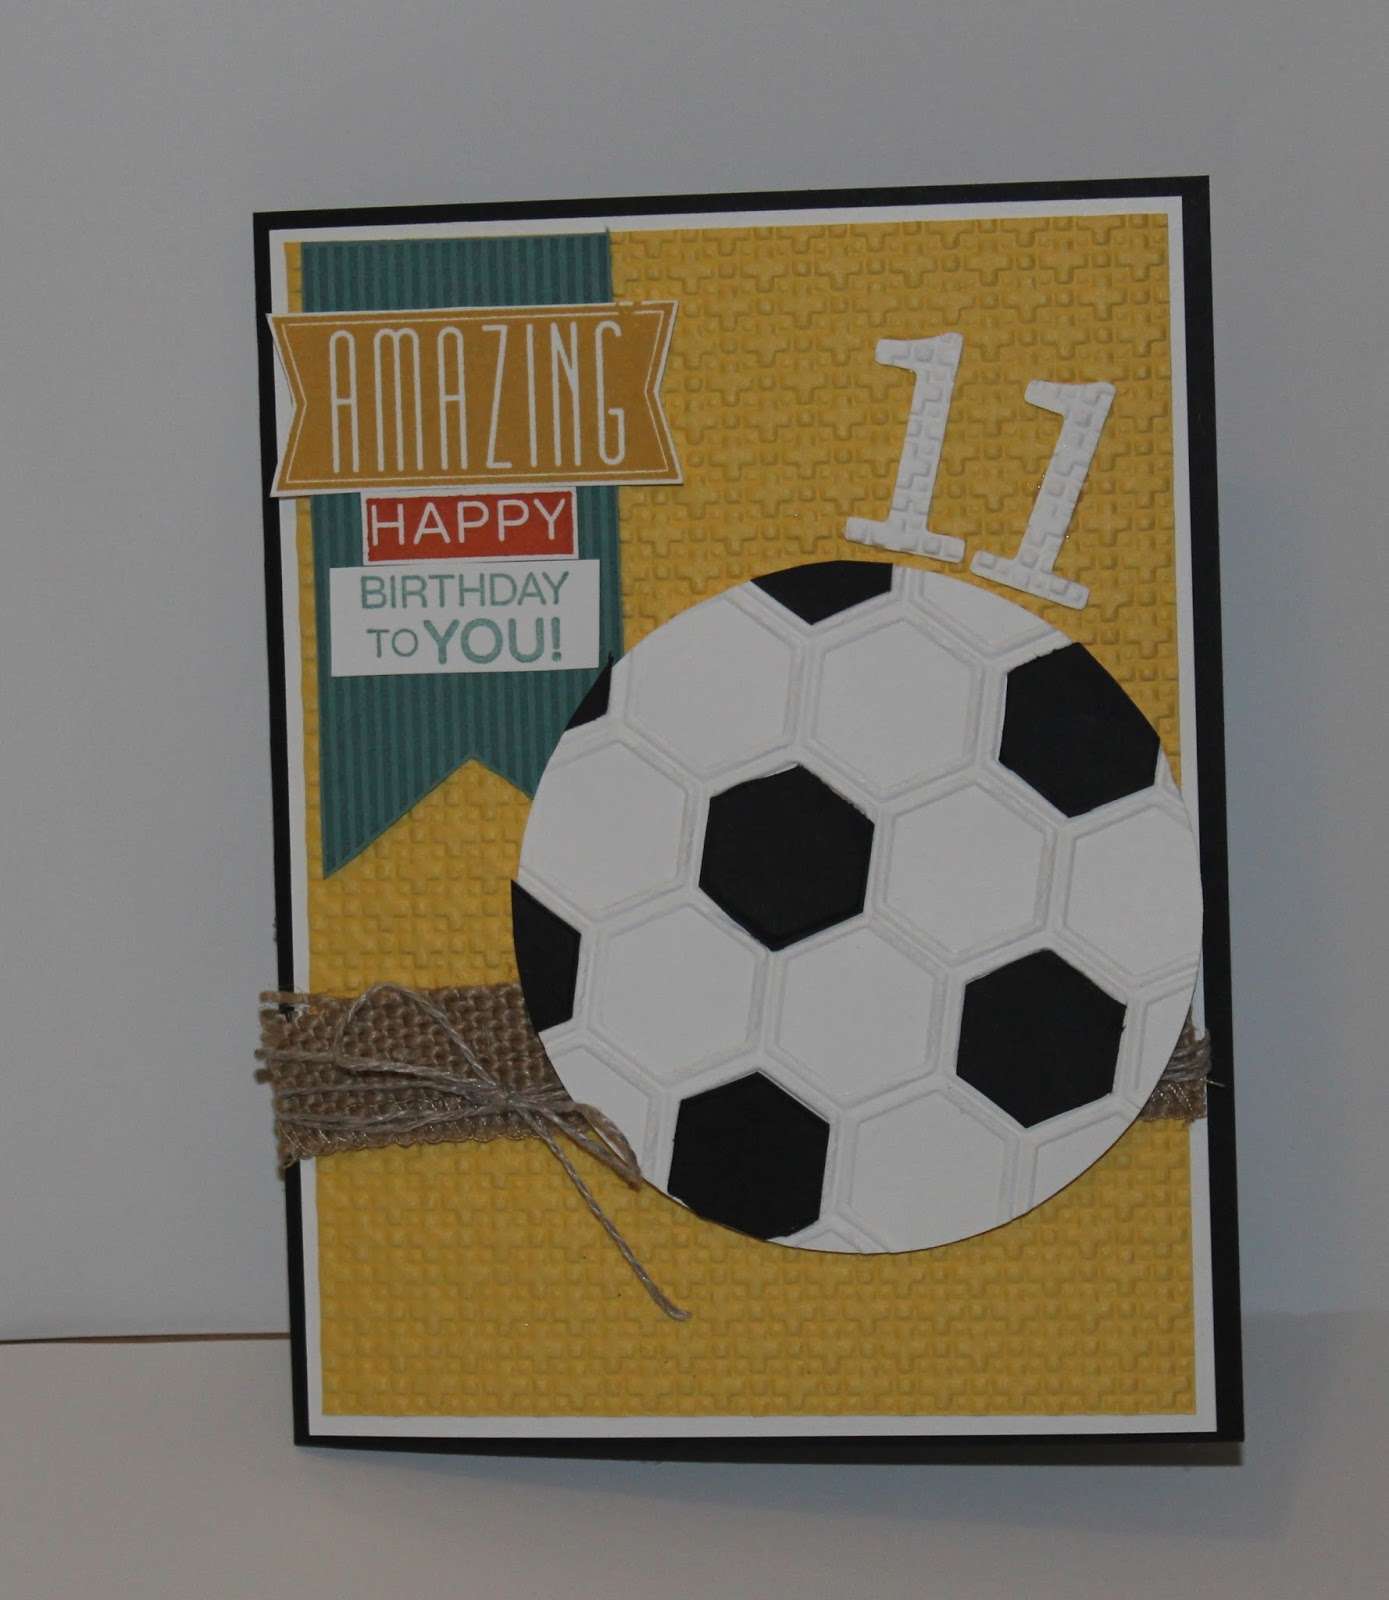 Share Yet Another Birthday Card Today This One Could Be For A Boy Or Anyone Who